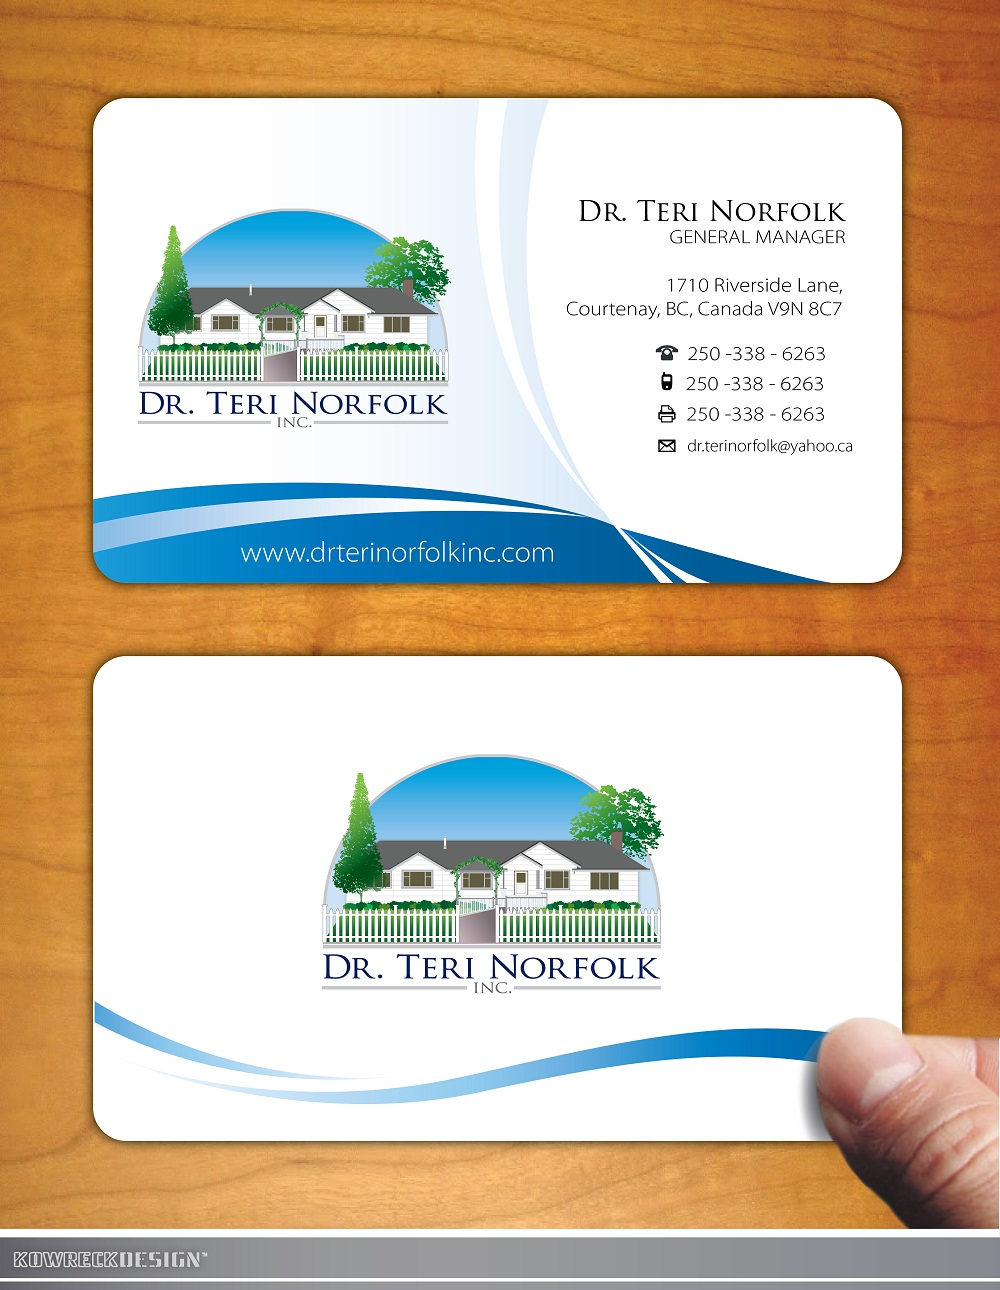 Visiting Cards Free Business Card Psd Mockup Vertical And